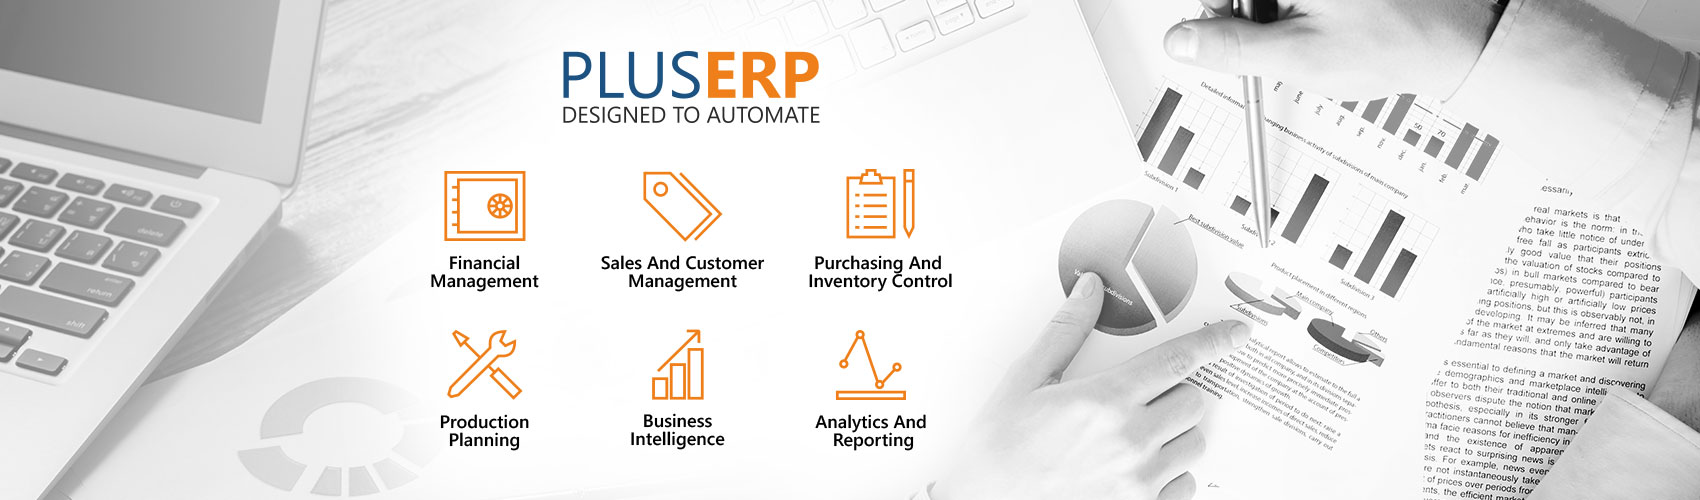 Plue ERP Design To Automate